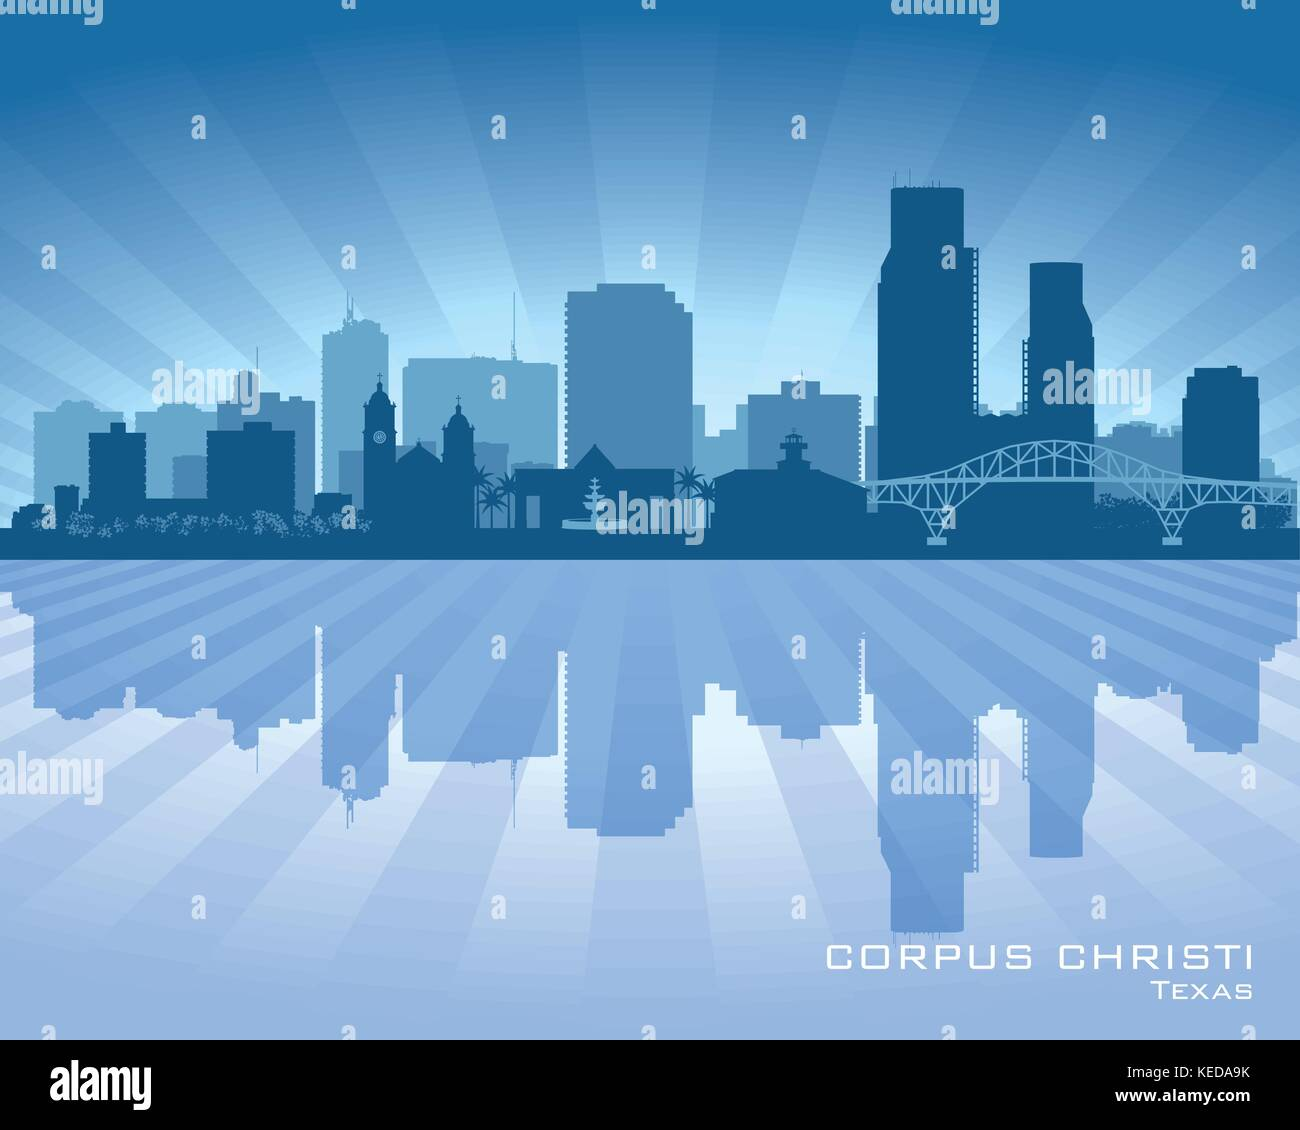 Corpus Christi Texas city skyline vector silhouette illustration Stock Vector